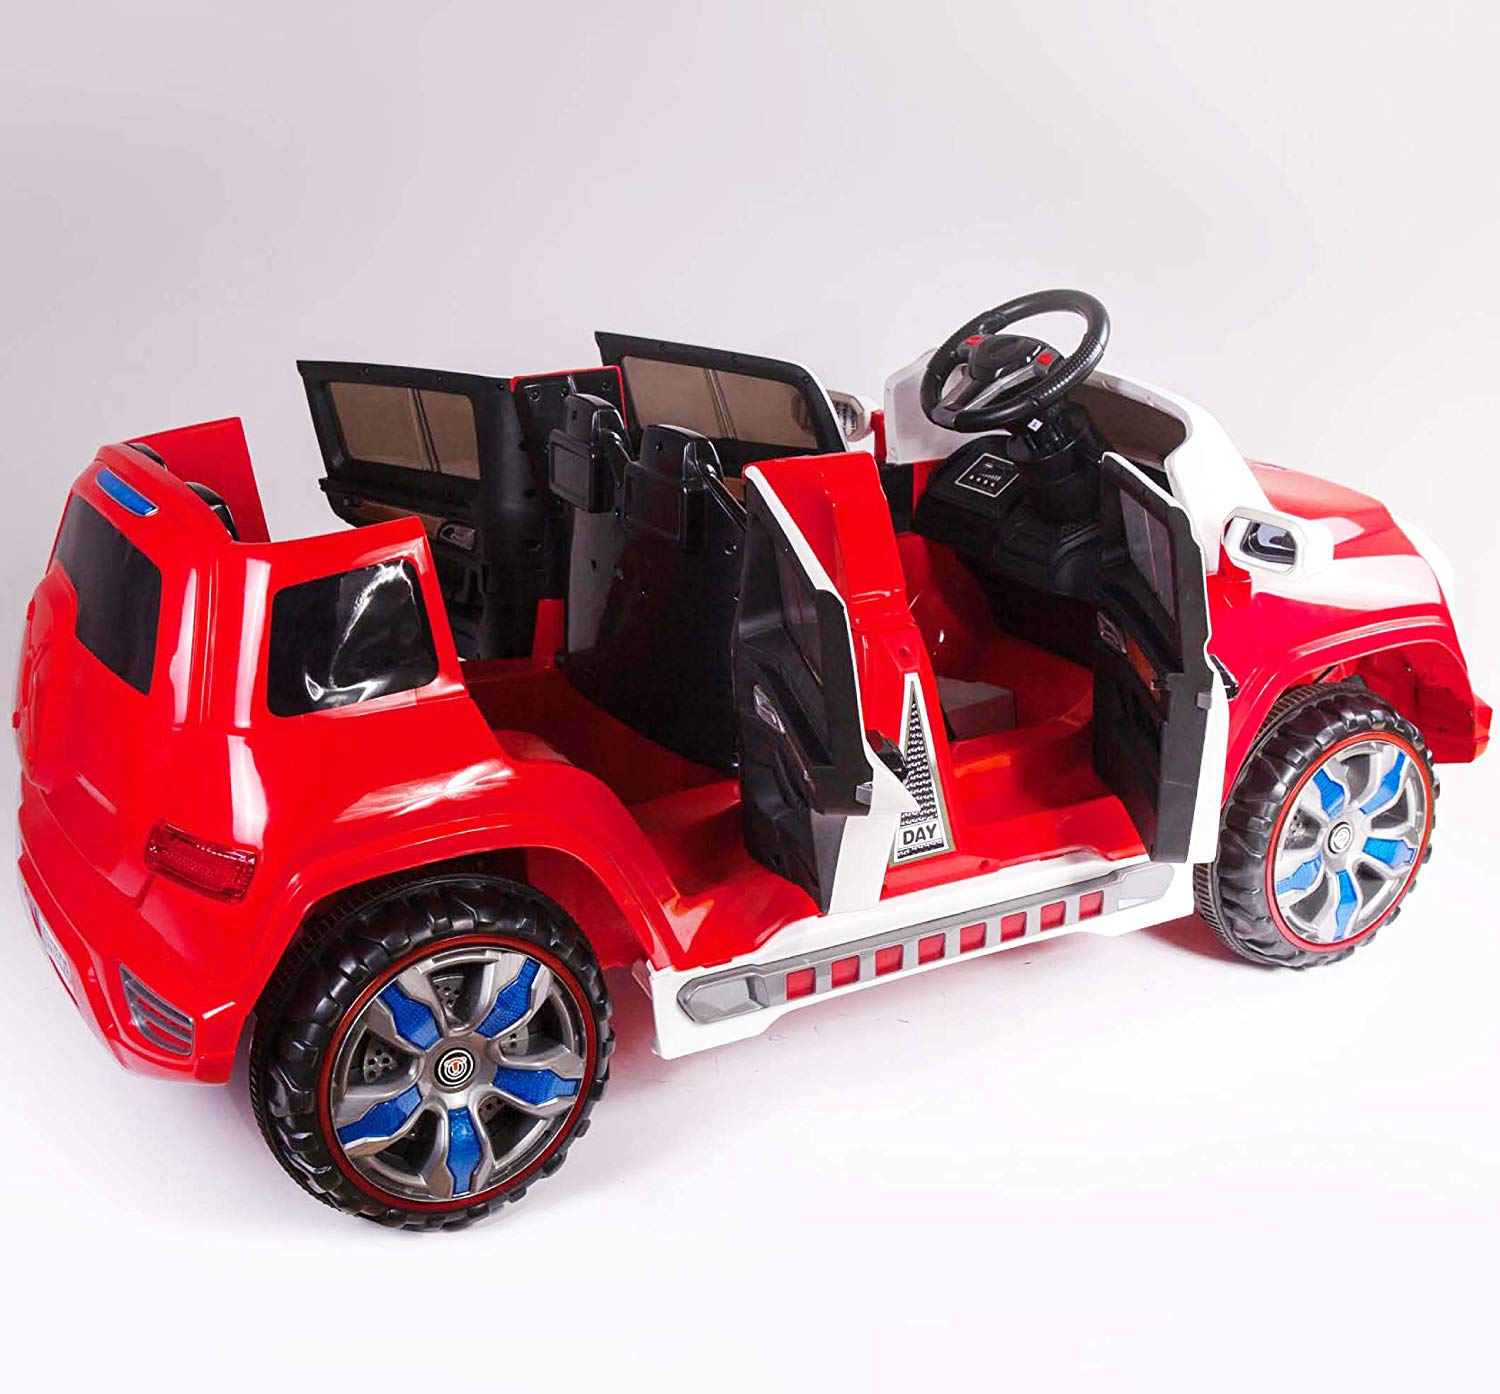 4 Door Ride On Two Seater Fire Truck Electric Toy Car For Kids 12v Bat Kidone Store